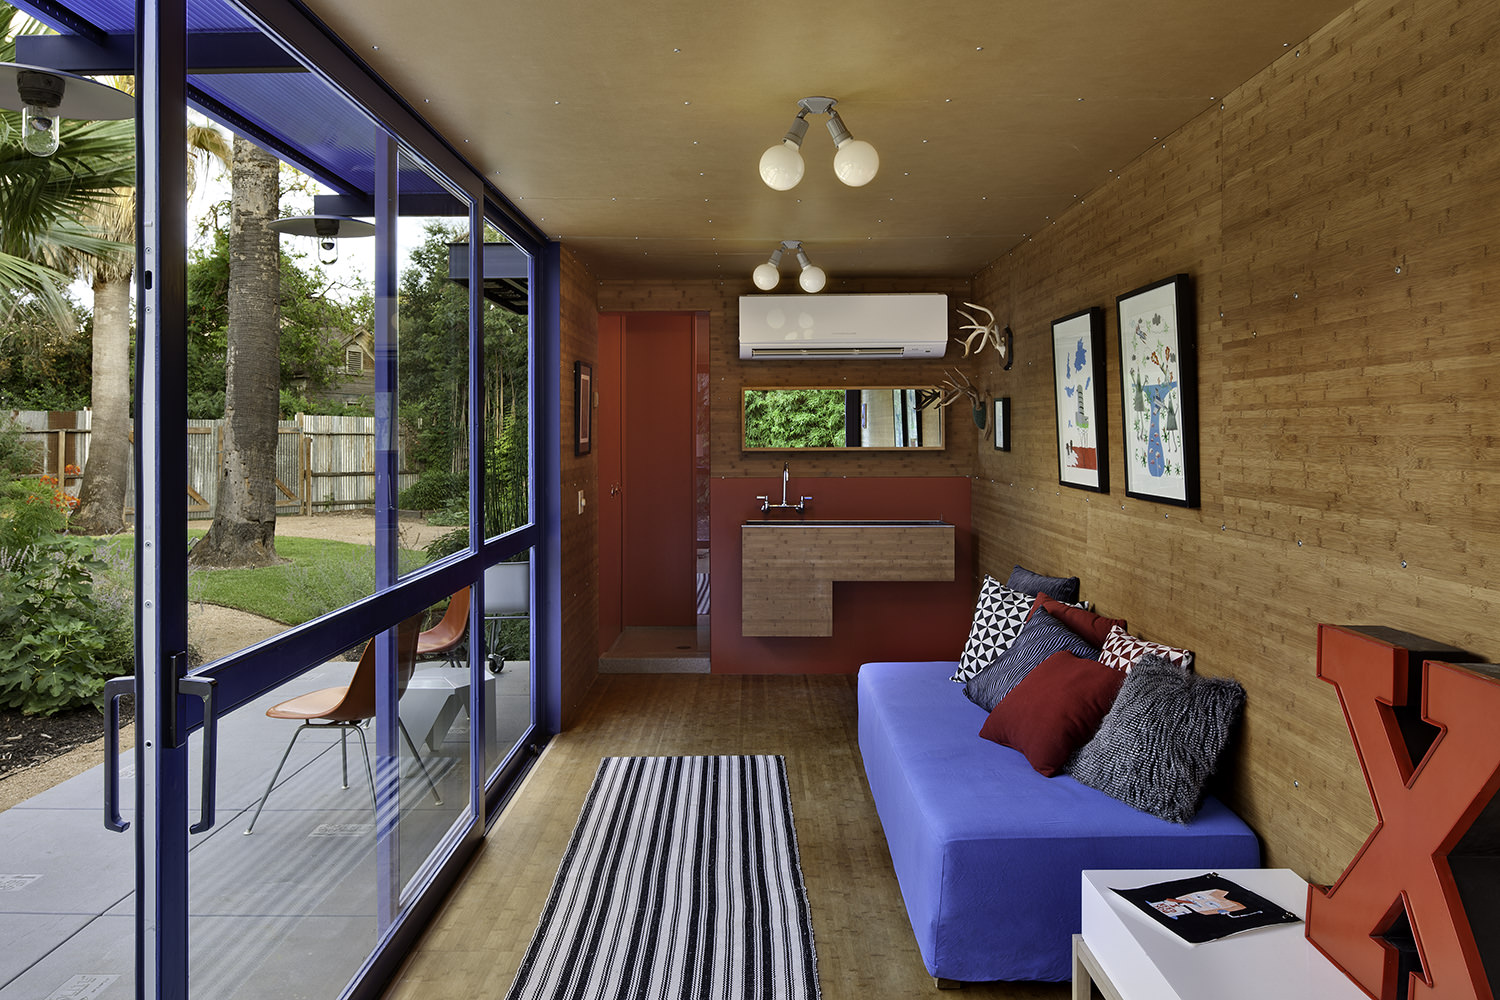 container-guest-house-7.jpg